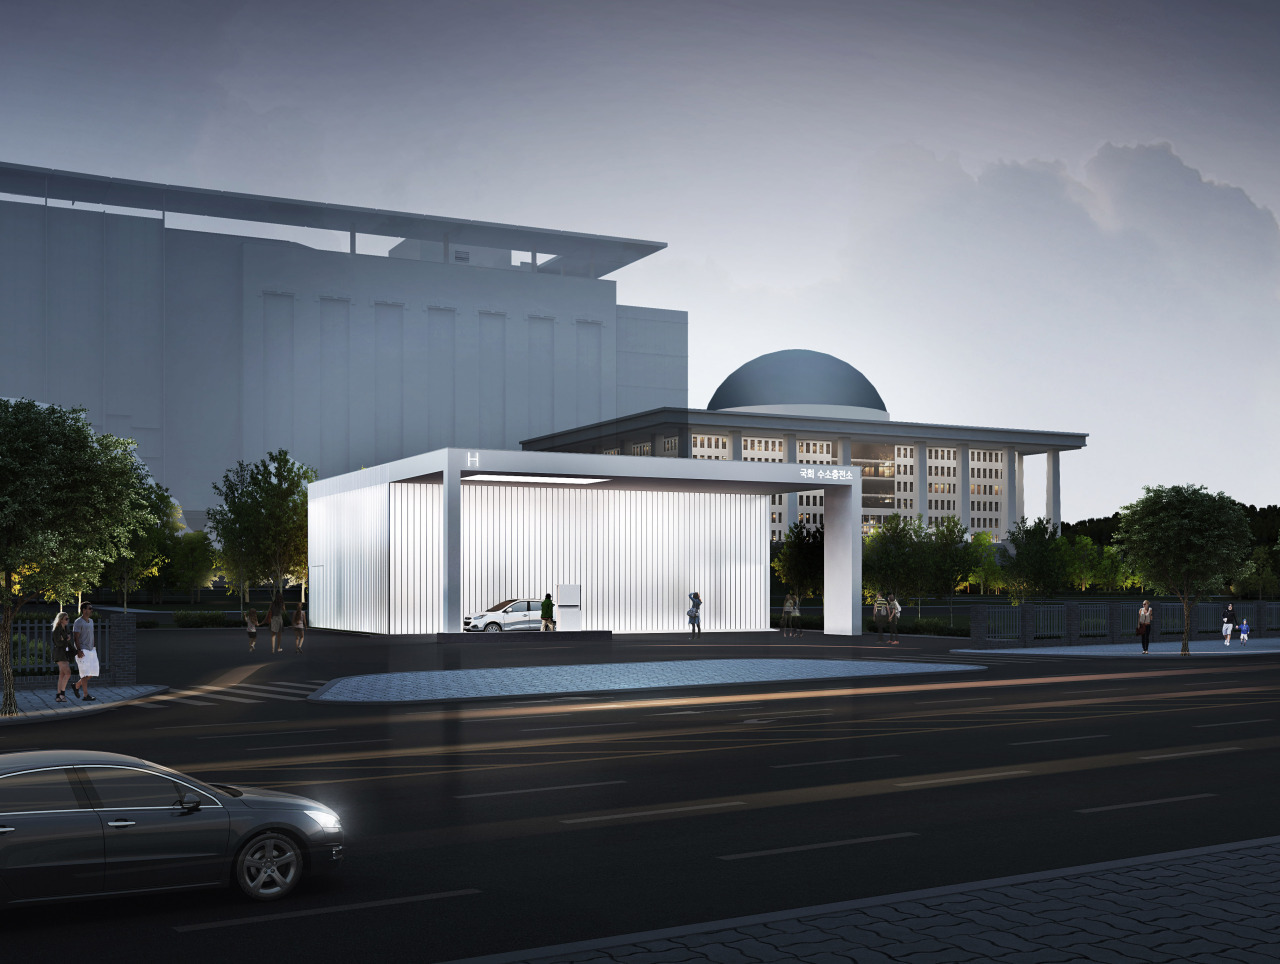 Architect Lim Jae-yong's impression of the planned hydrogen station at the Assembly (Hyundai Motor)